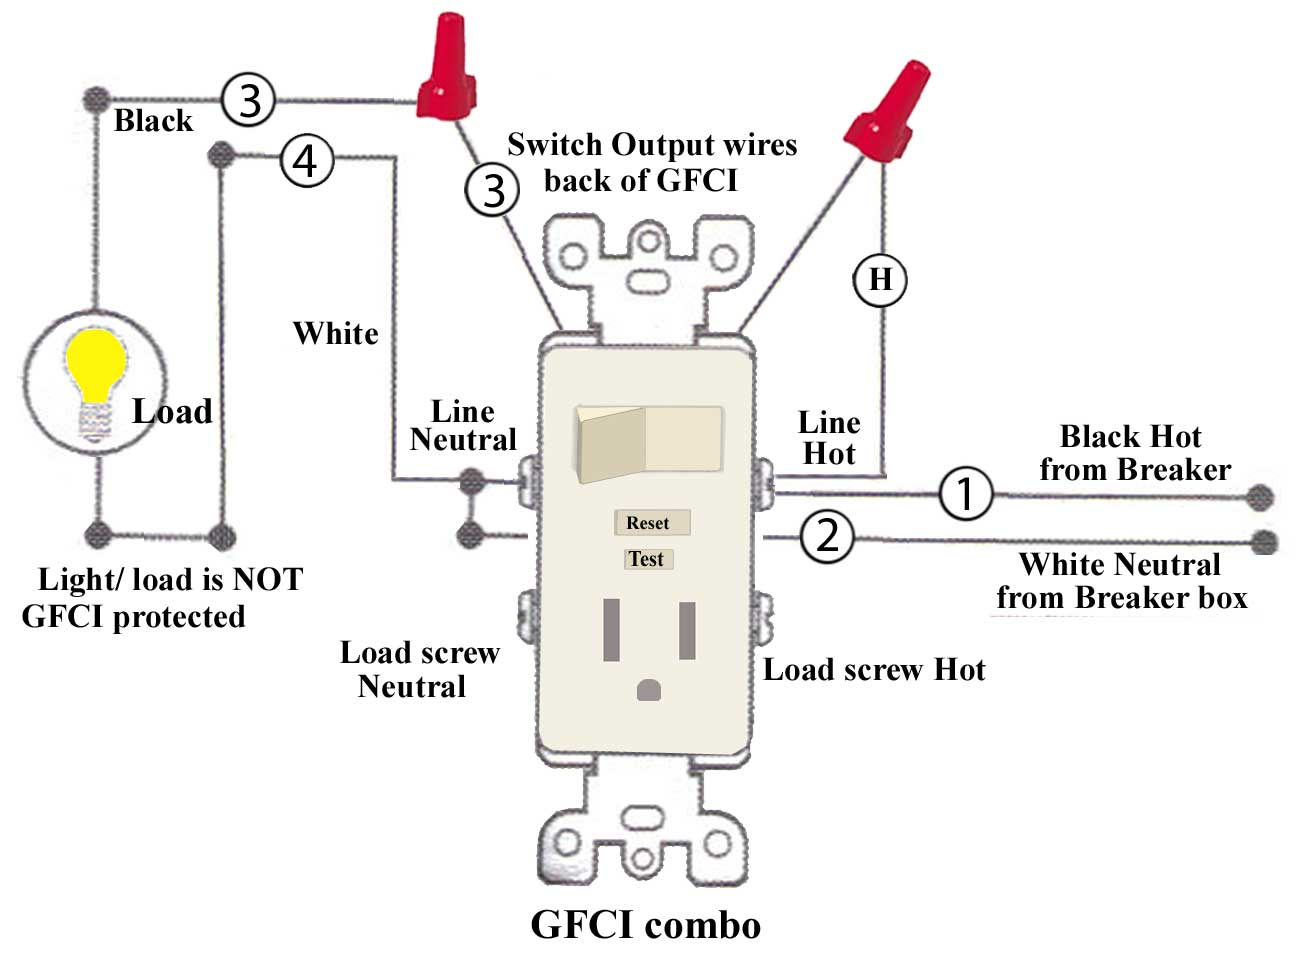 How To Install And Troubleshoot Gfci Ground Fault Circuit Interrupter Safety Outlet This Type Of Larger Image